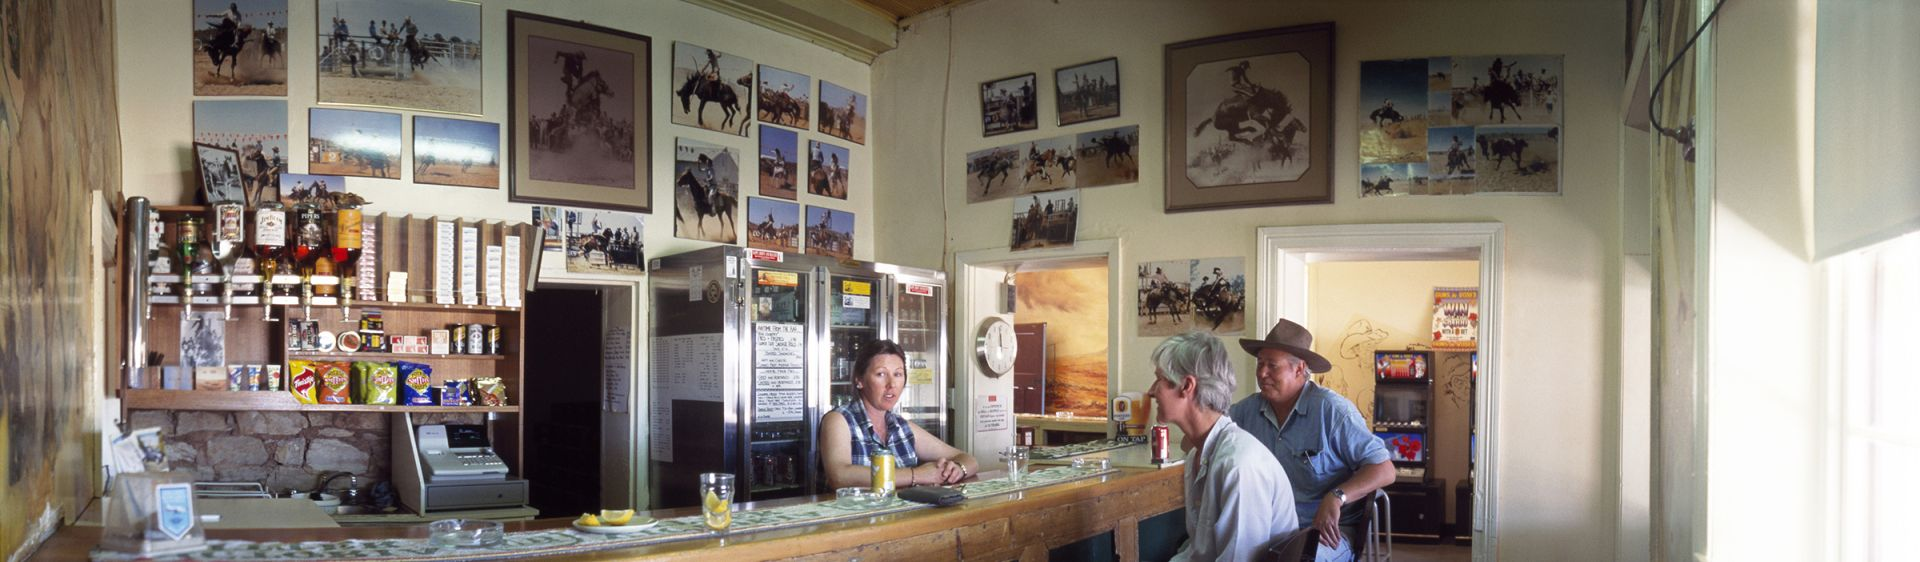 Meet the locals at the Tibooburra Hotel